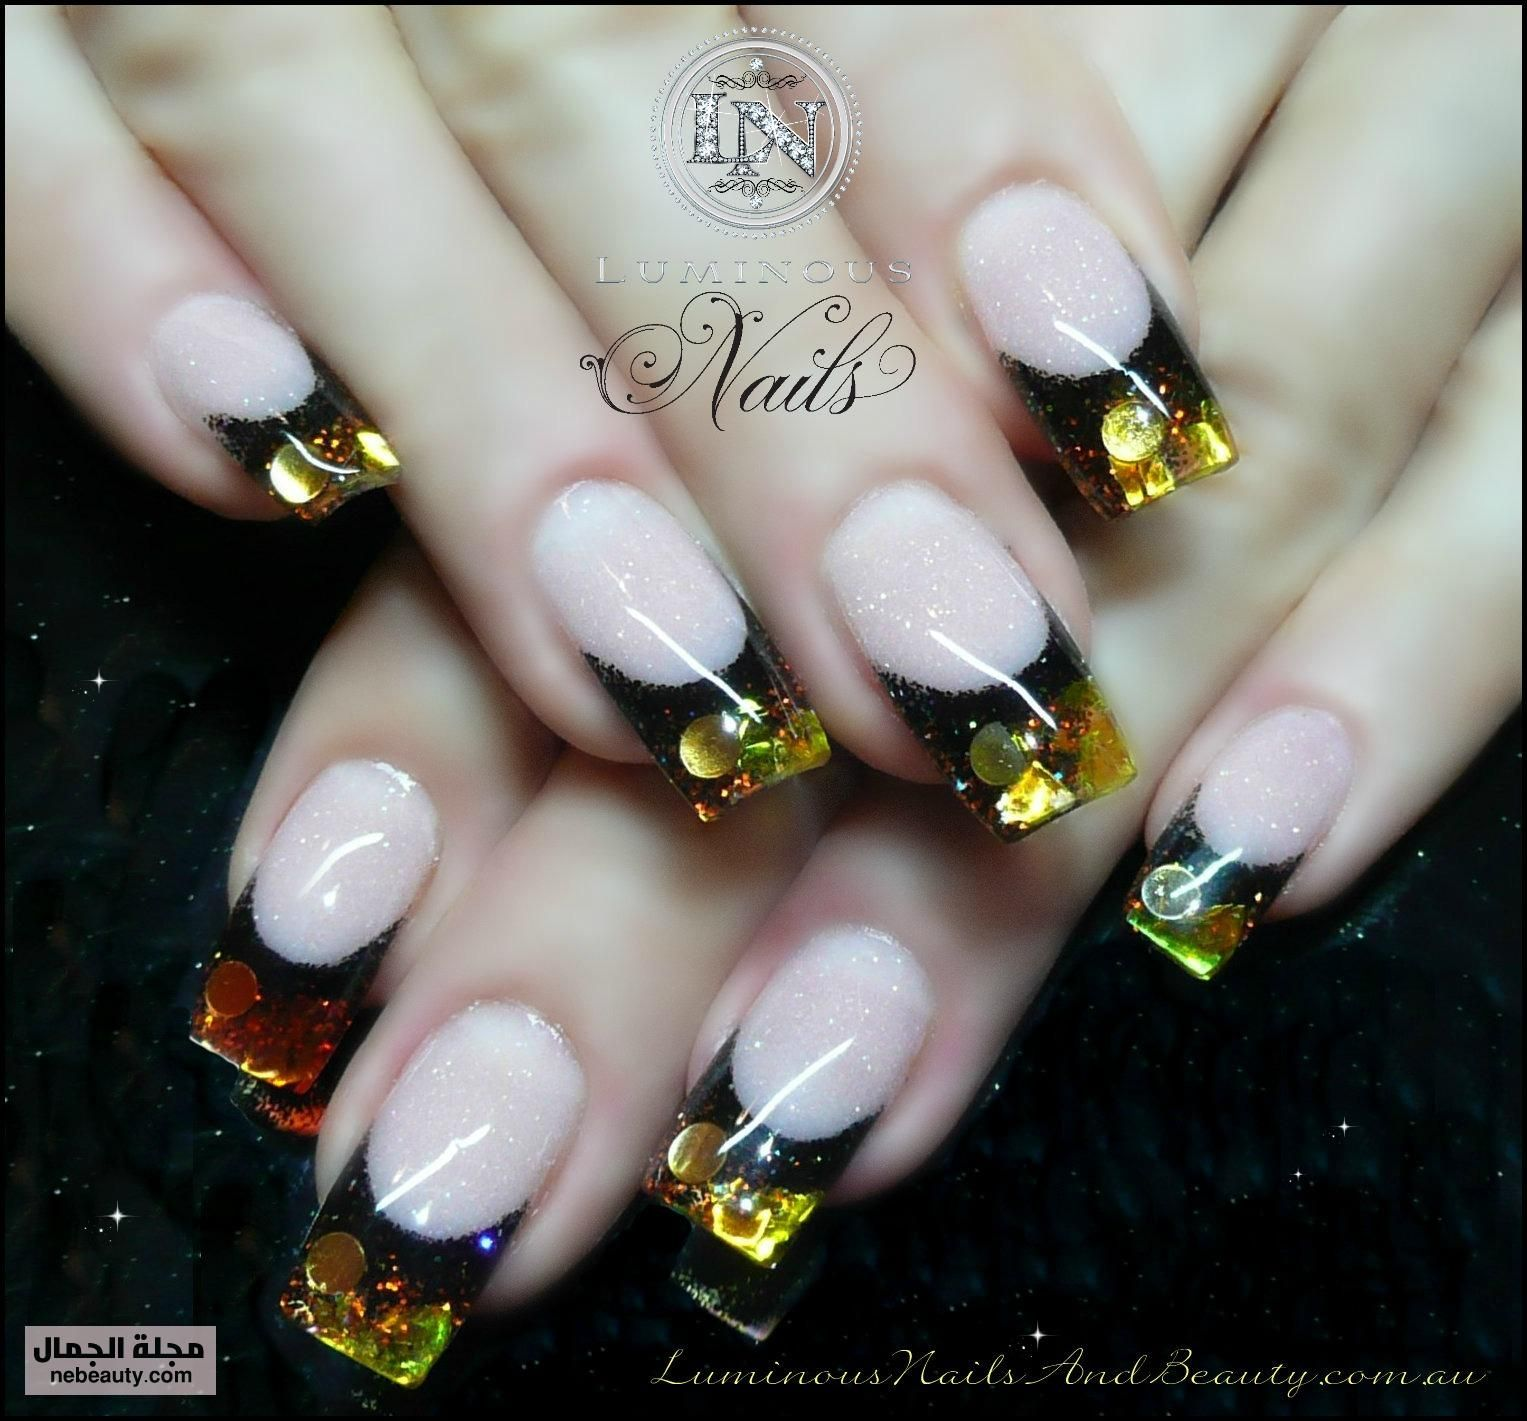 Luminous Nails and Beauty, Gold Coast Queensland. Acrylic